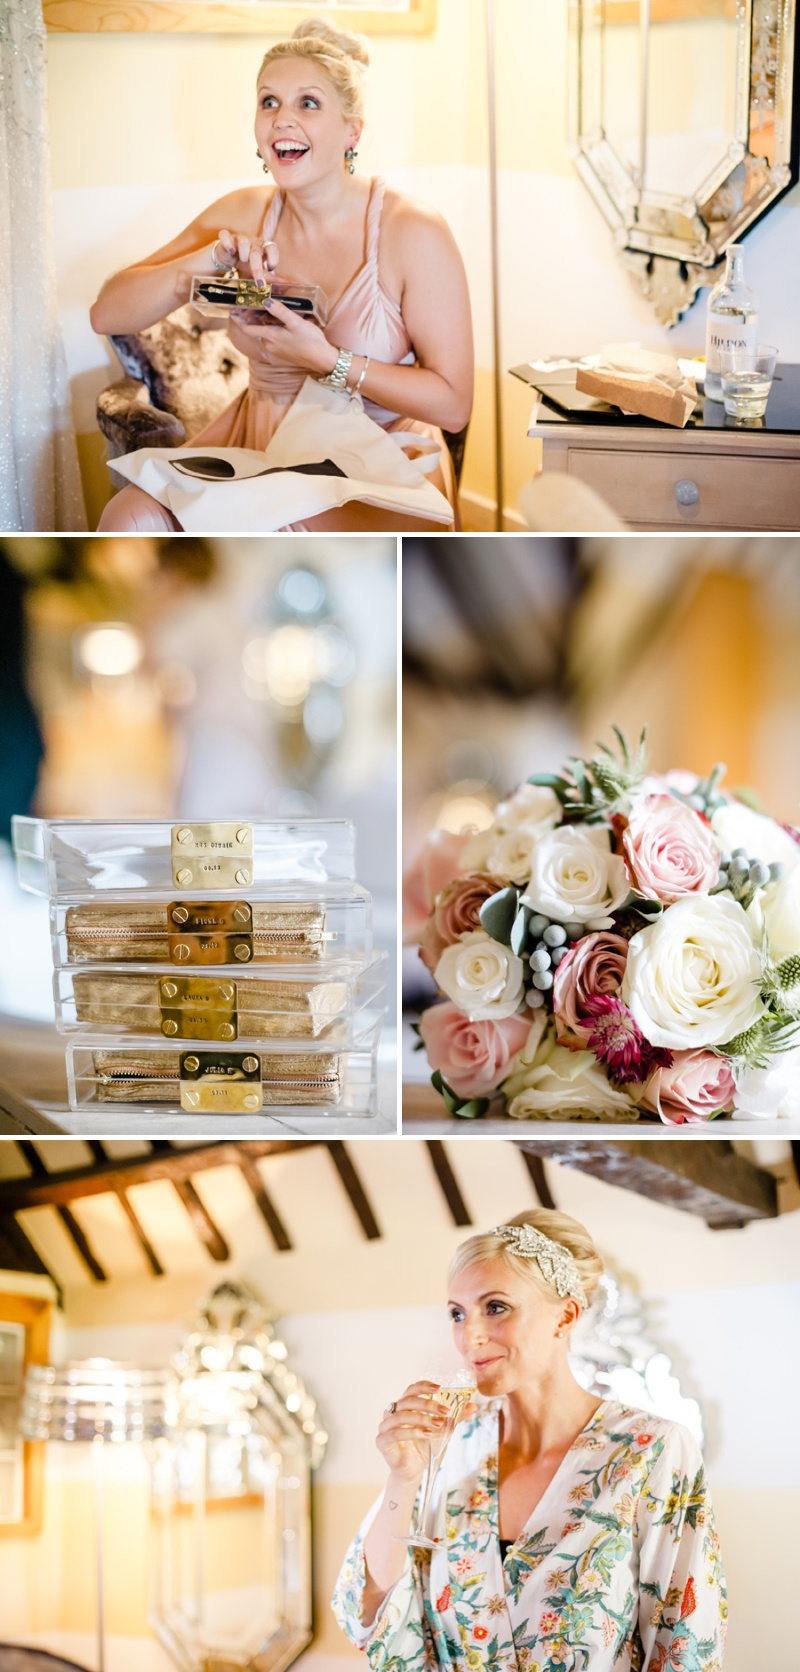 A Beautiful Music Inspired Wedding At The Crazy Bear In Stadhampton With A Jenny Packham Esme Wedding Dress and A Pink And Cream Avalanche Rose Bouquet._0002